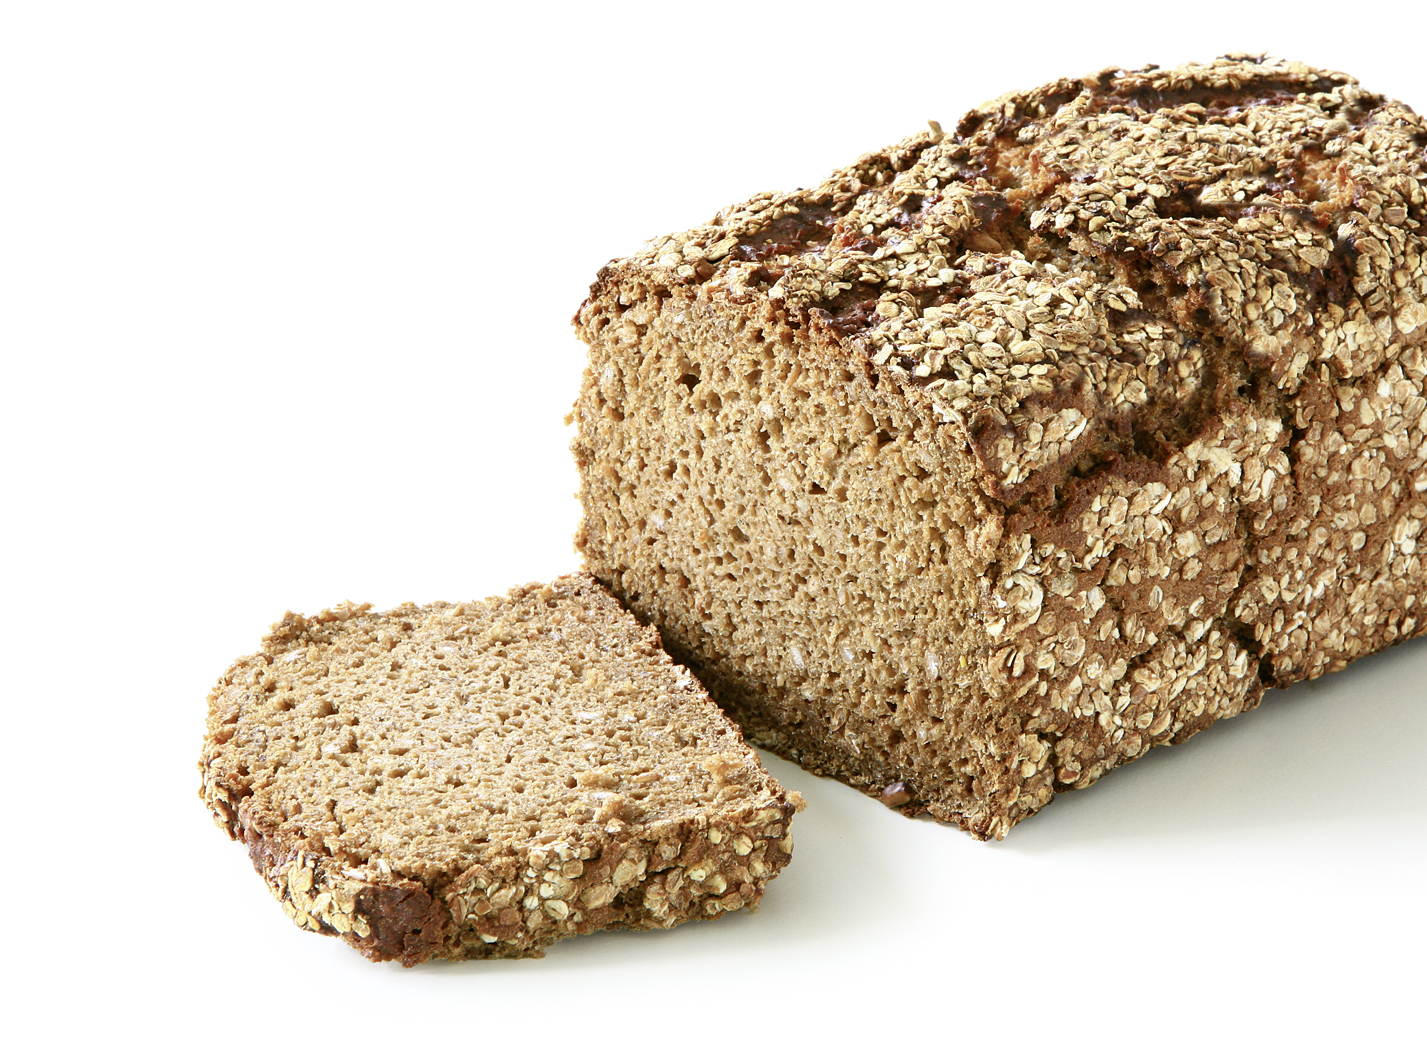 Wholegrain roll - Box-shaped/ equally sprinkled with rye flakes length: 20 cm